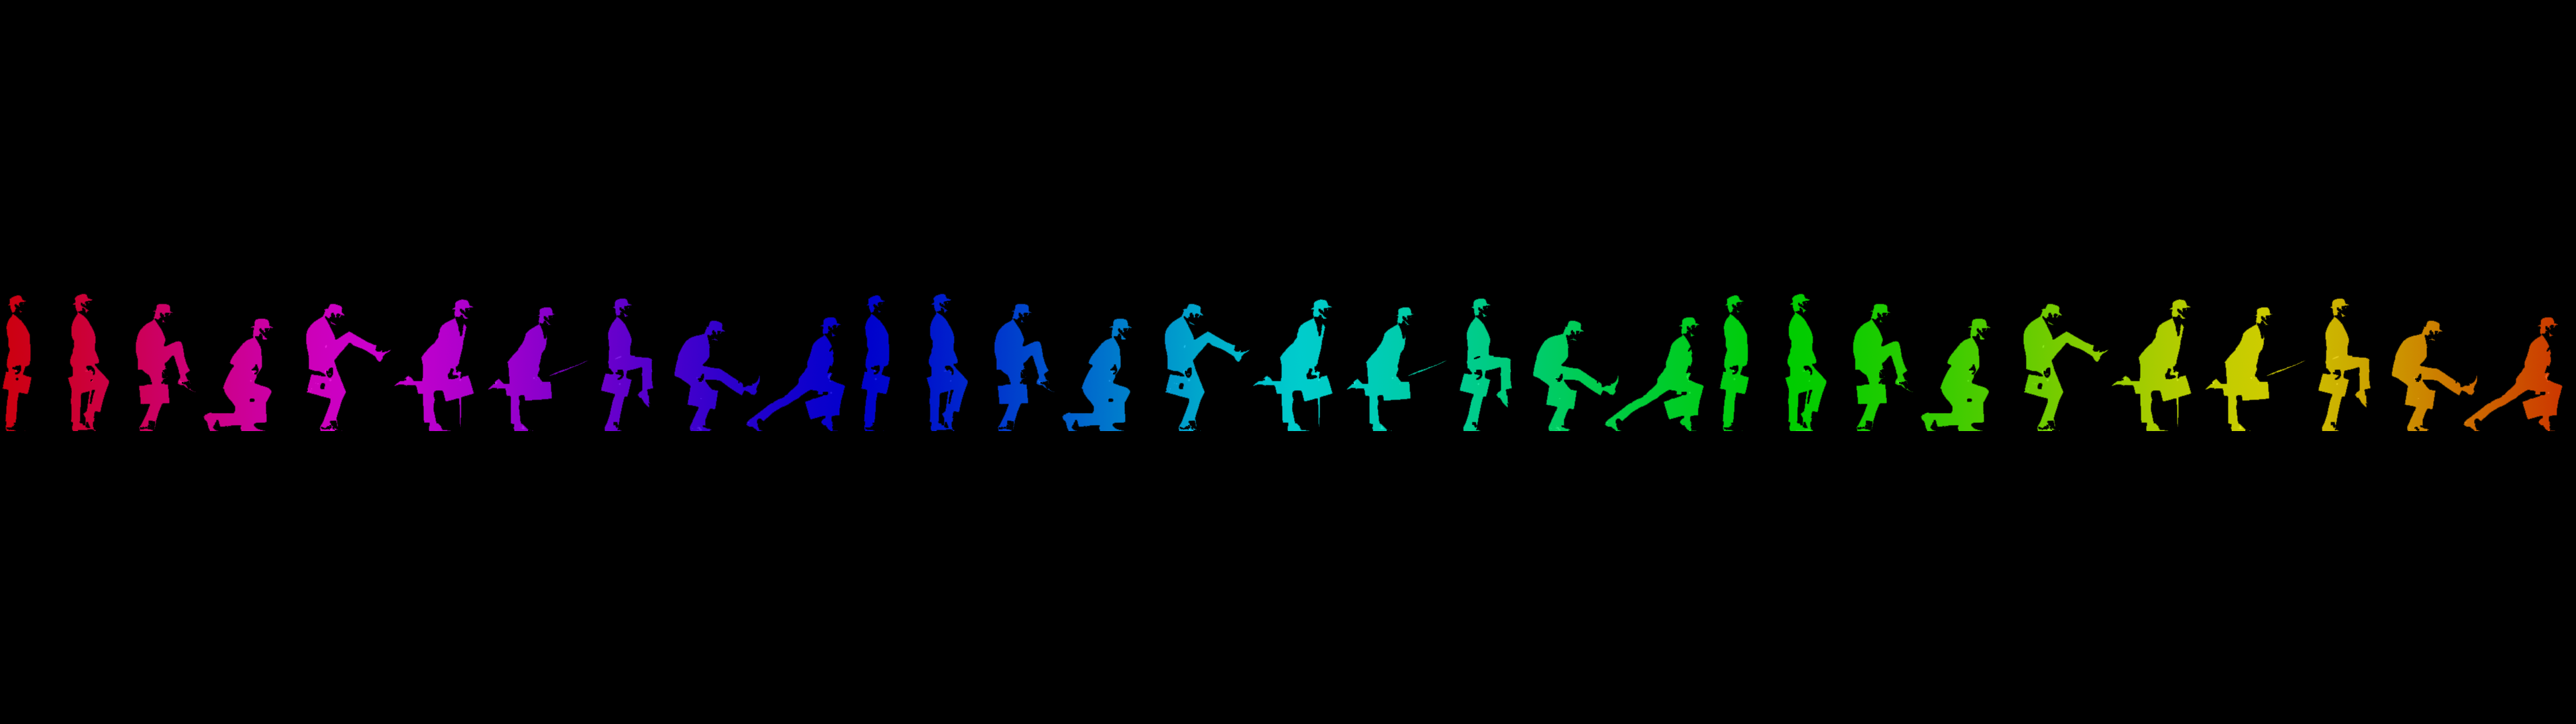 Portal 2 dual screen wallpaper gaming - Monty Python Ministry Of Silly Walks Dual Screen By